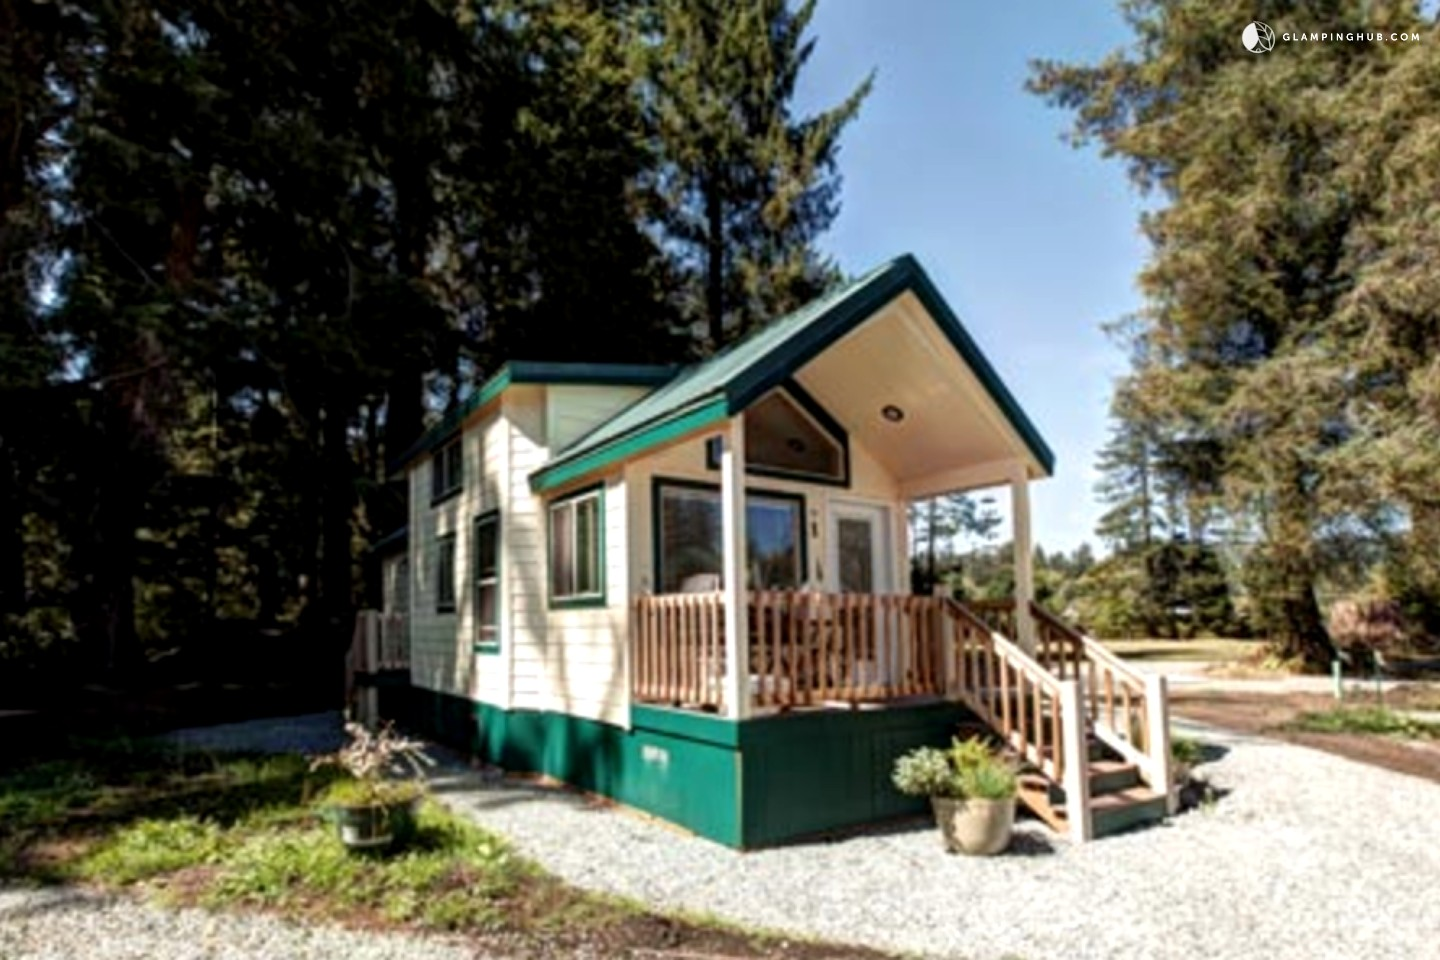 Tiny House Rentals in Tillamook Bay